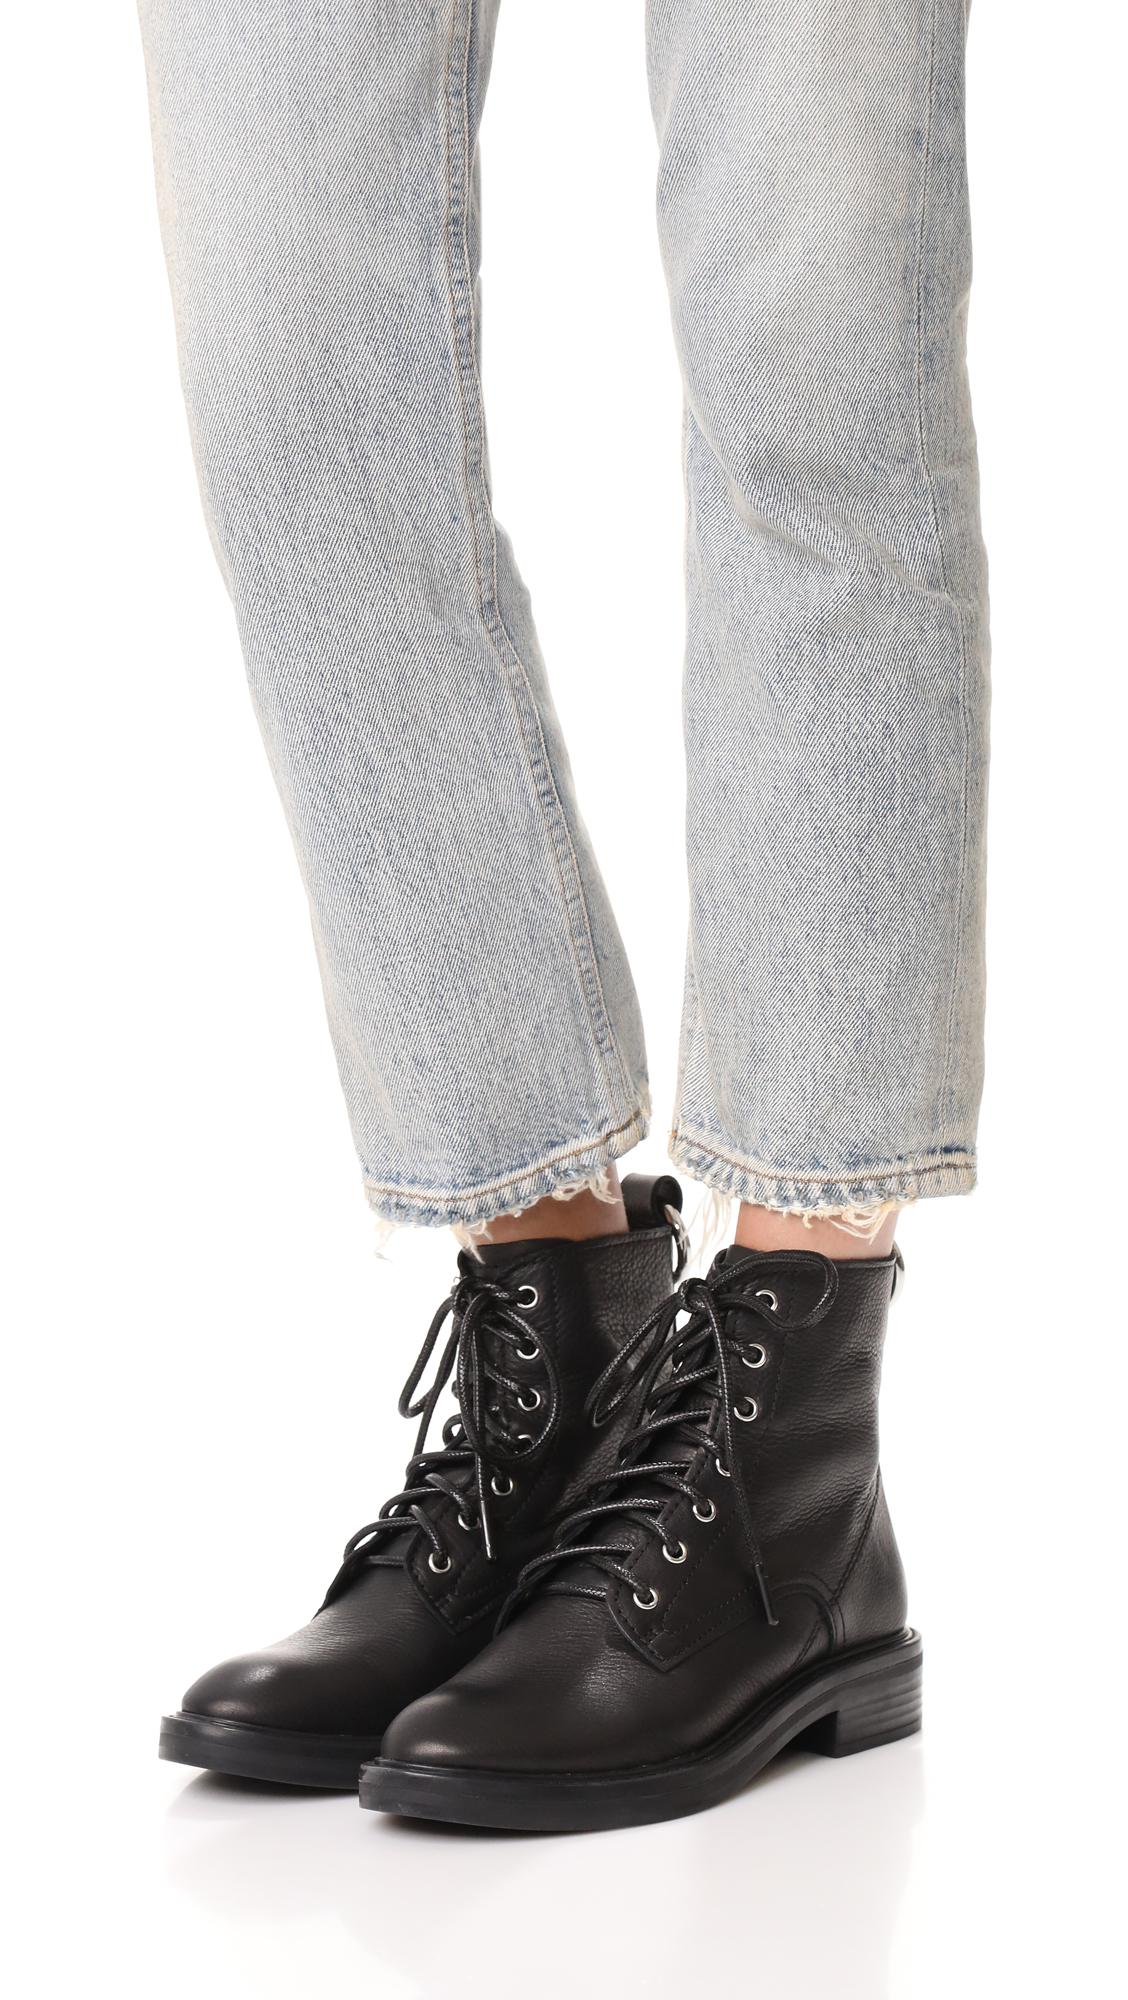 Dolce Vita Leather Bardot Combat Boots in Black